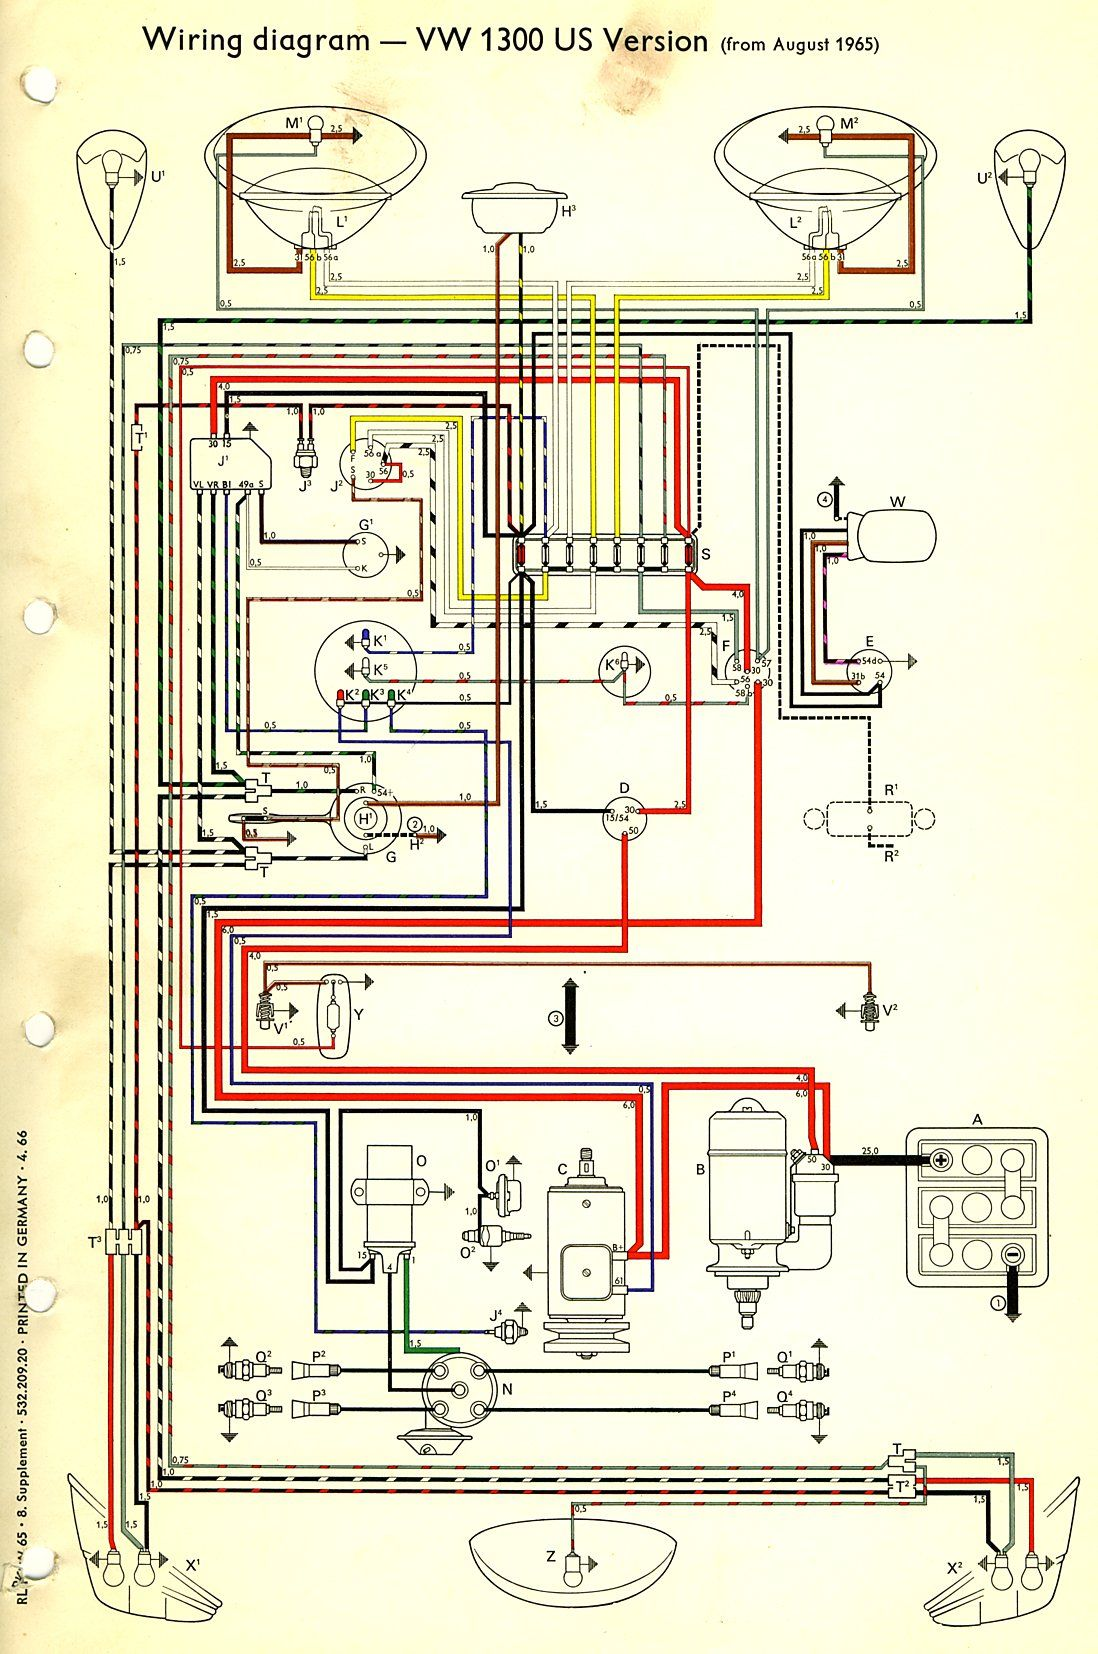 Pin By Fn2bhad On Buggy Dune Buggy Vw Dune Buggy Electrical Wiring Diagram